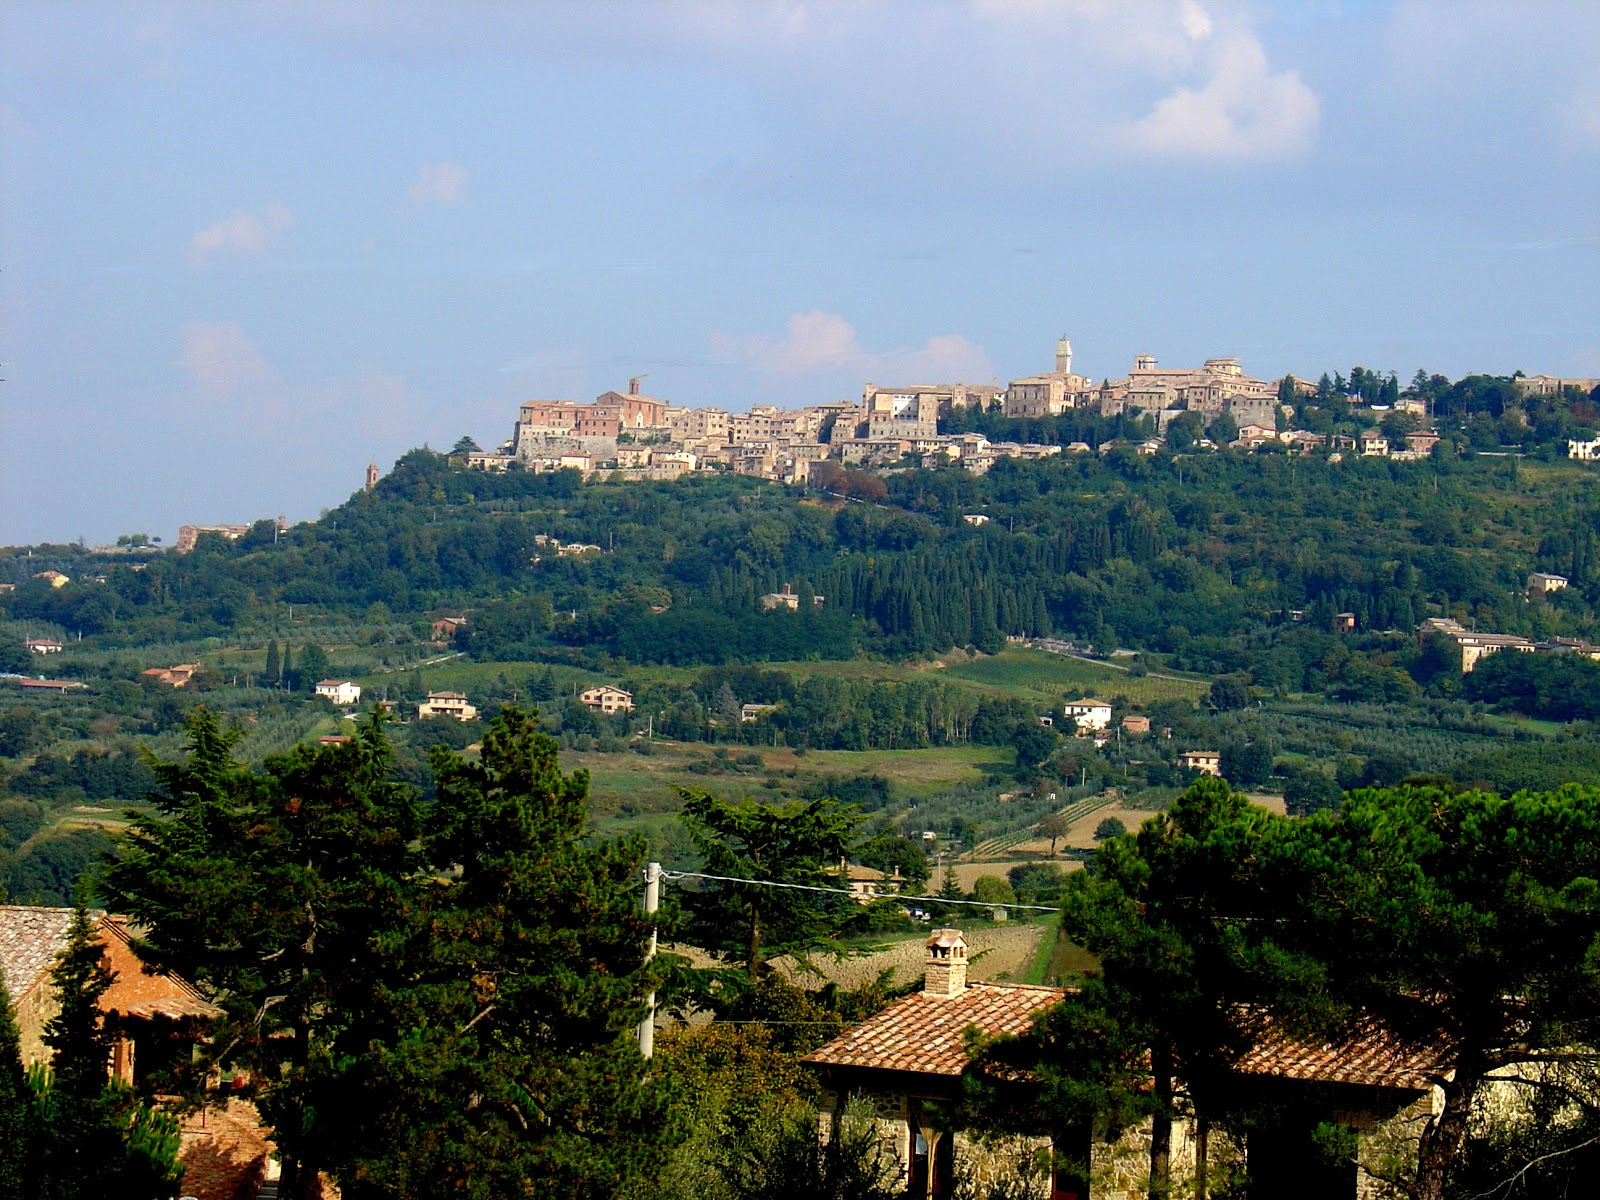 Montepulciano Italy  city photo : The allure of Montepulciano in Tuscany, Italy beckons to all travelers ...